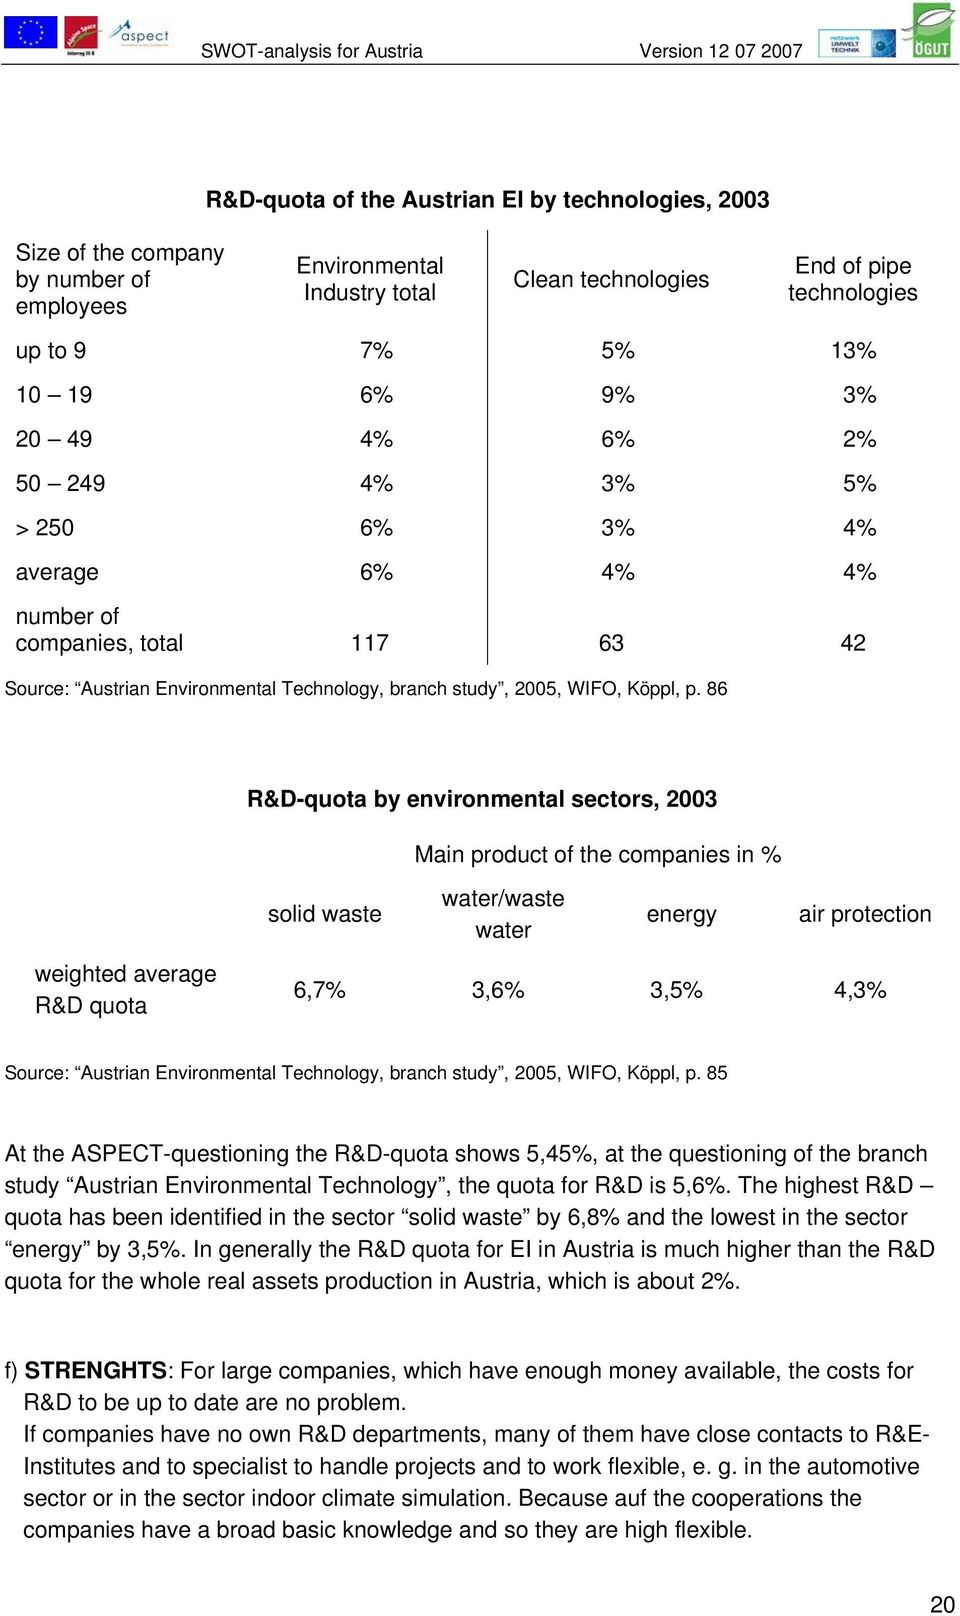 86 R&D-quota by environmental sectors, 2003 Main product of the companies in % weighted average R&D quota solid waste water/waste water energy air protection 6,7% 3,6% 3,5% 4,3% Source: Austrian